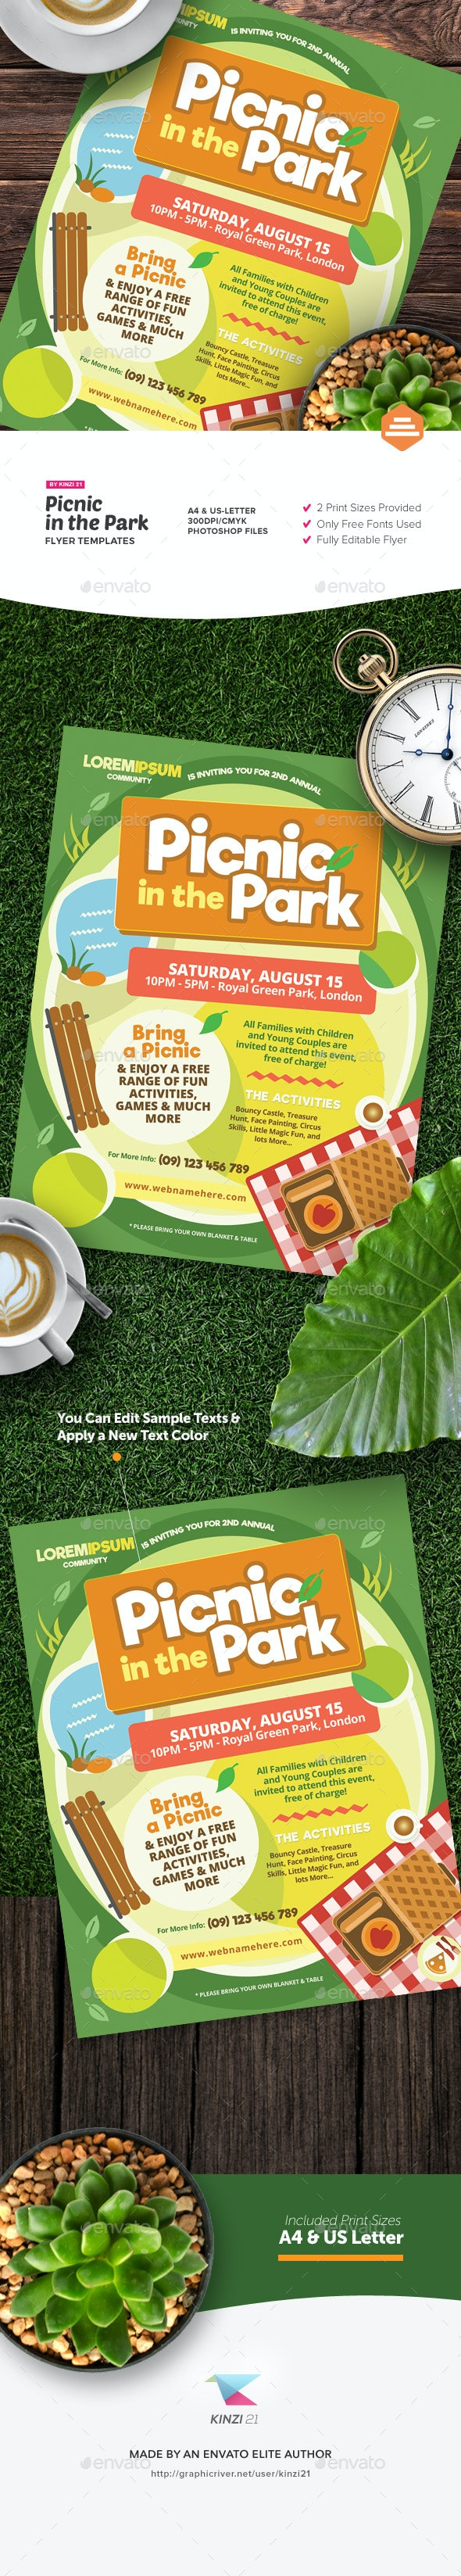 Picnic in the Park Flyer Template - Miscellaneous Events